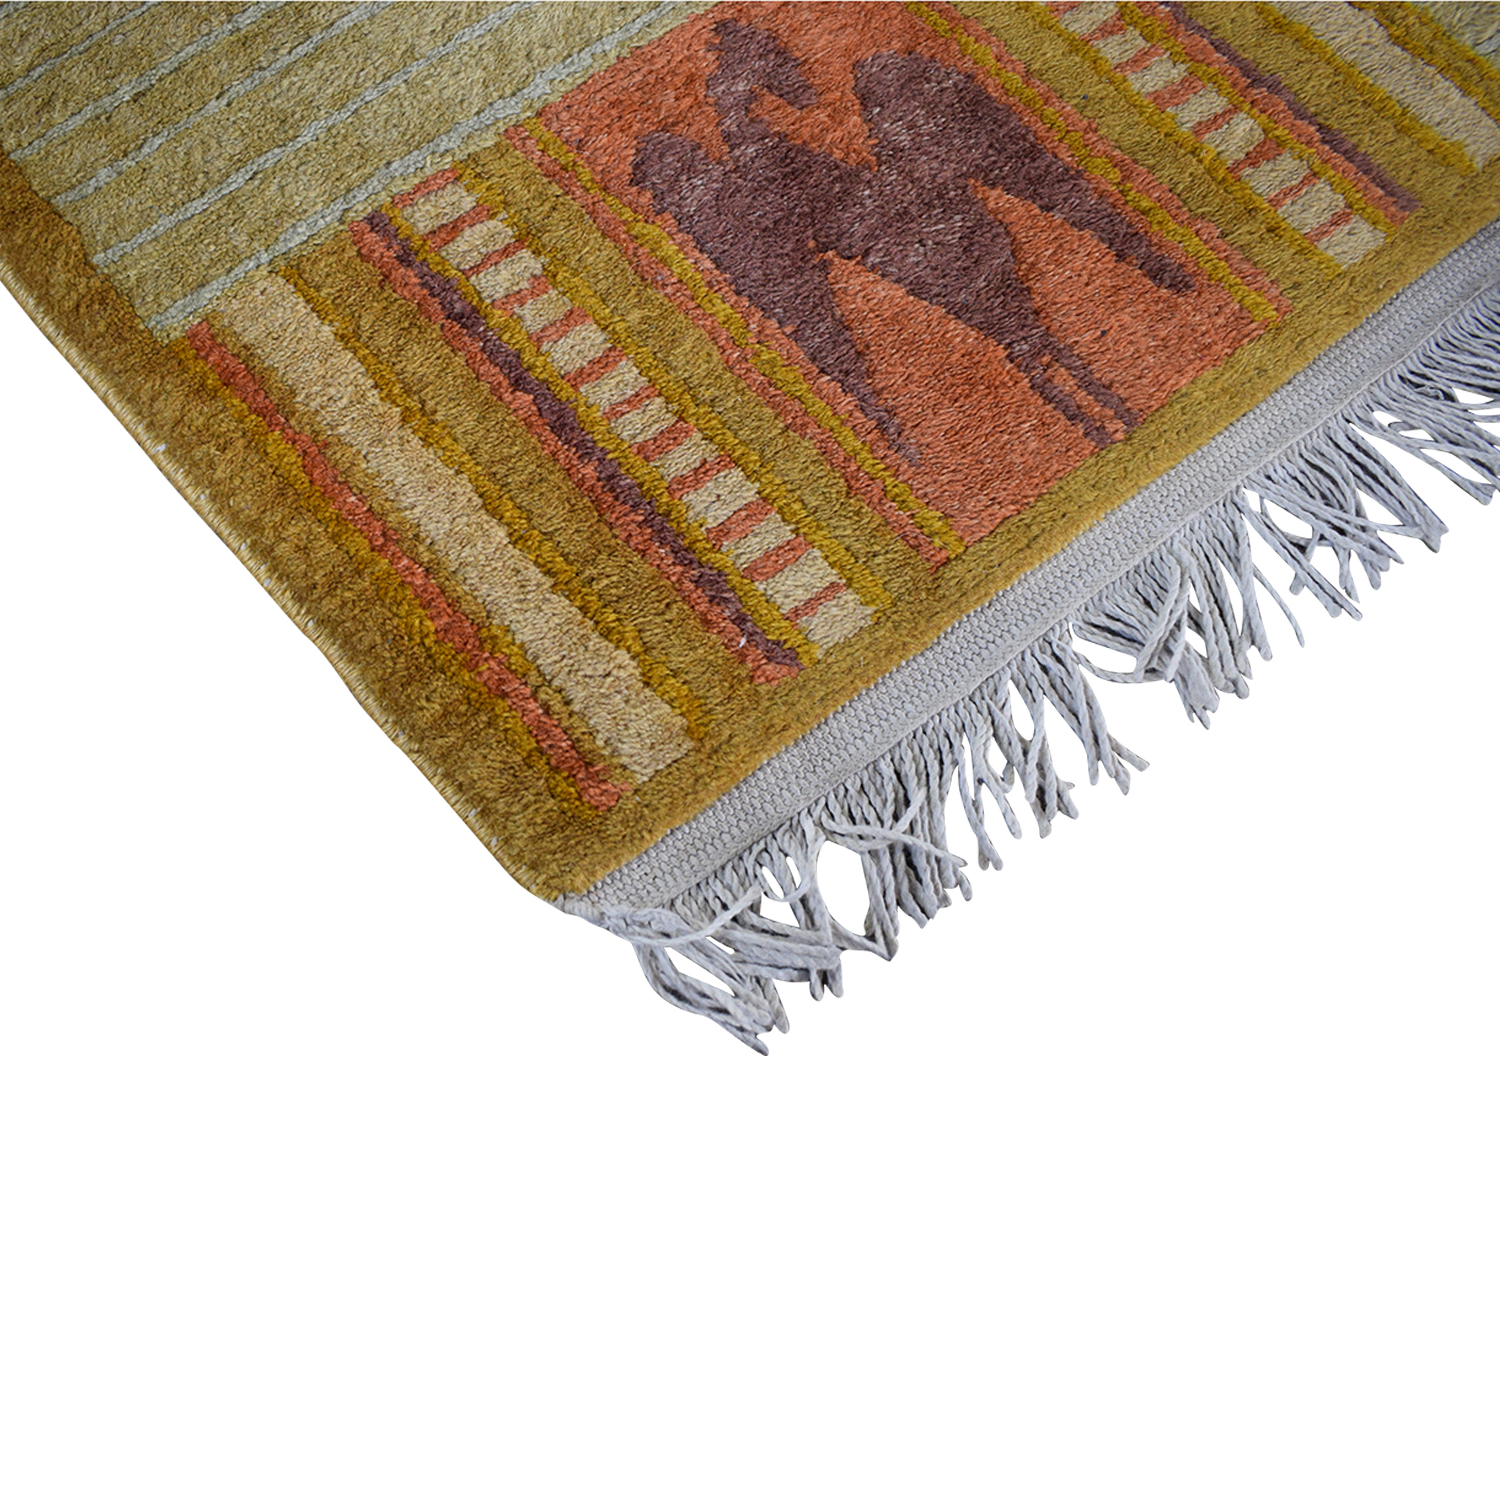 shop ABC Carpet & Home ABC Carpet & Home Hand-Knotted Wool Rug online